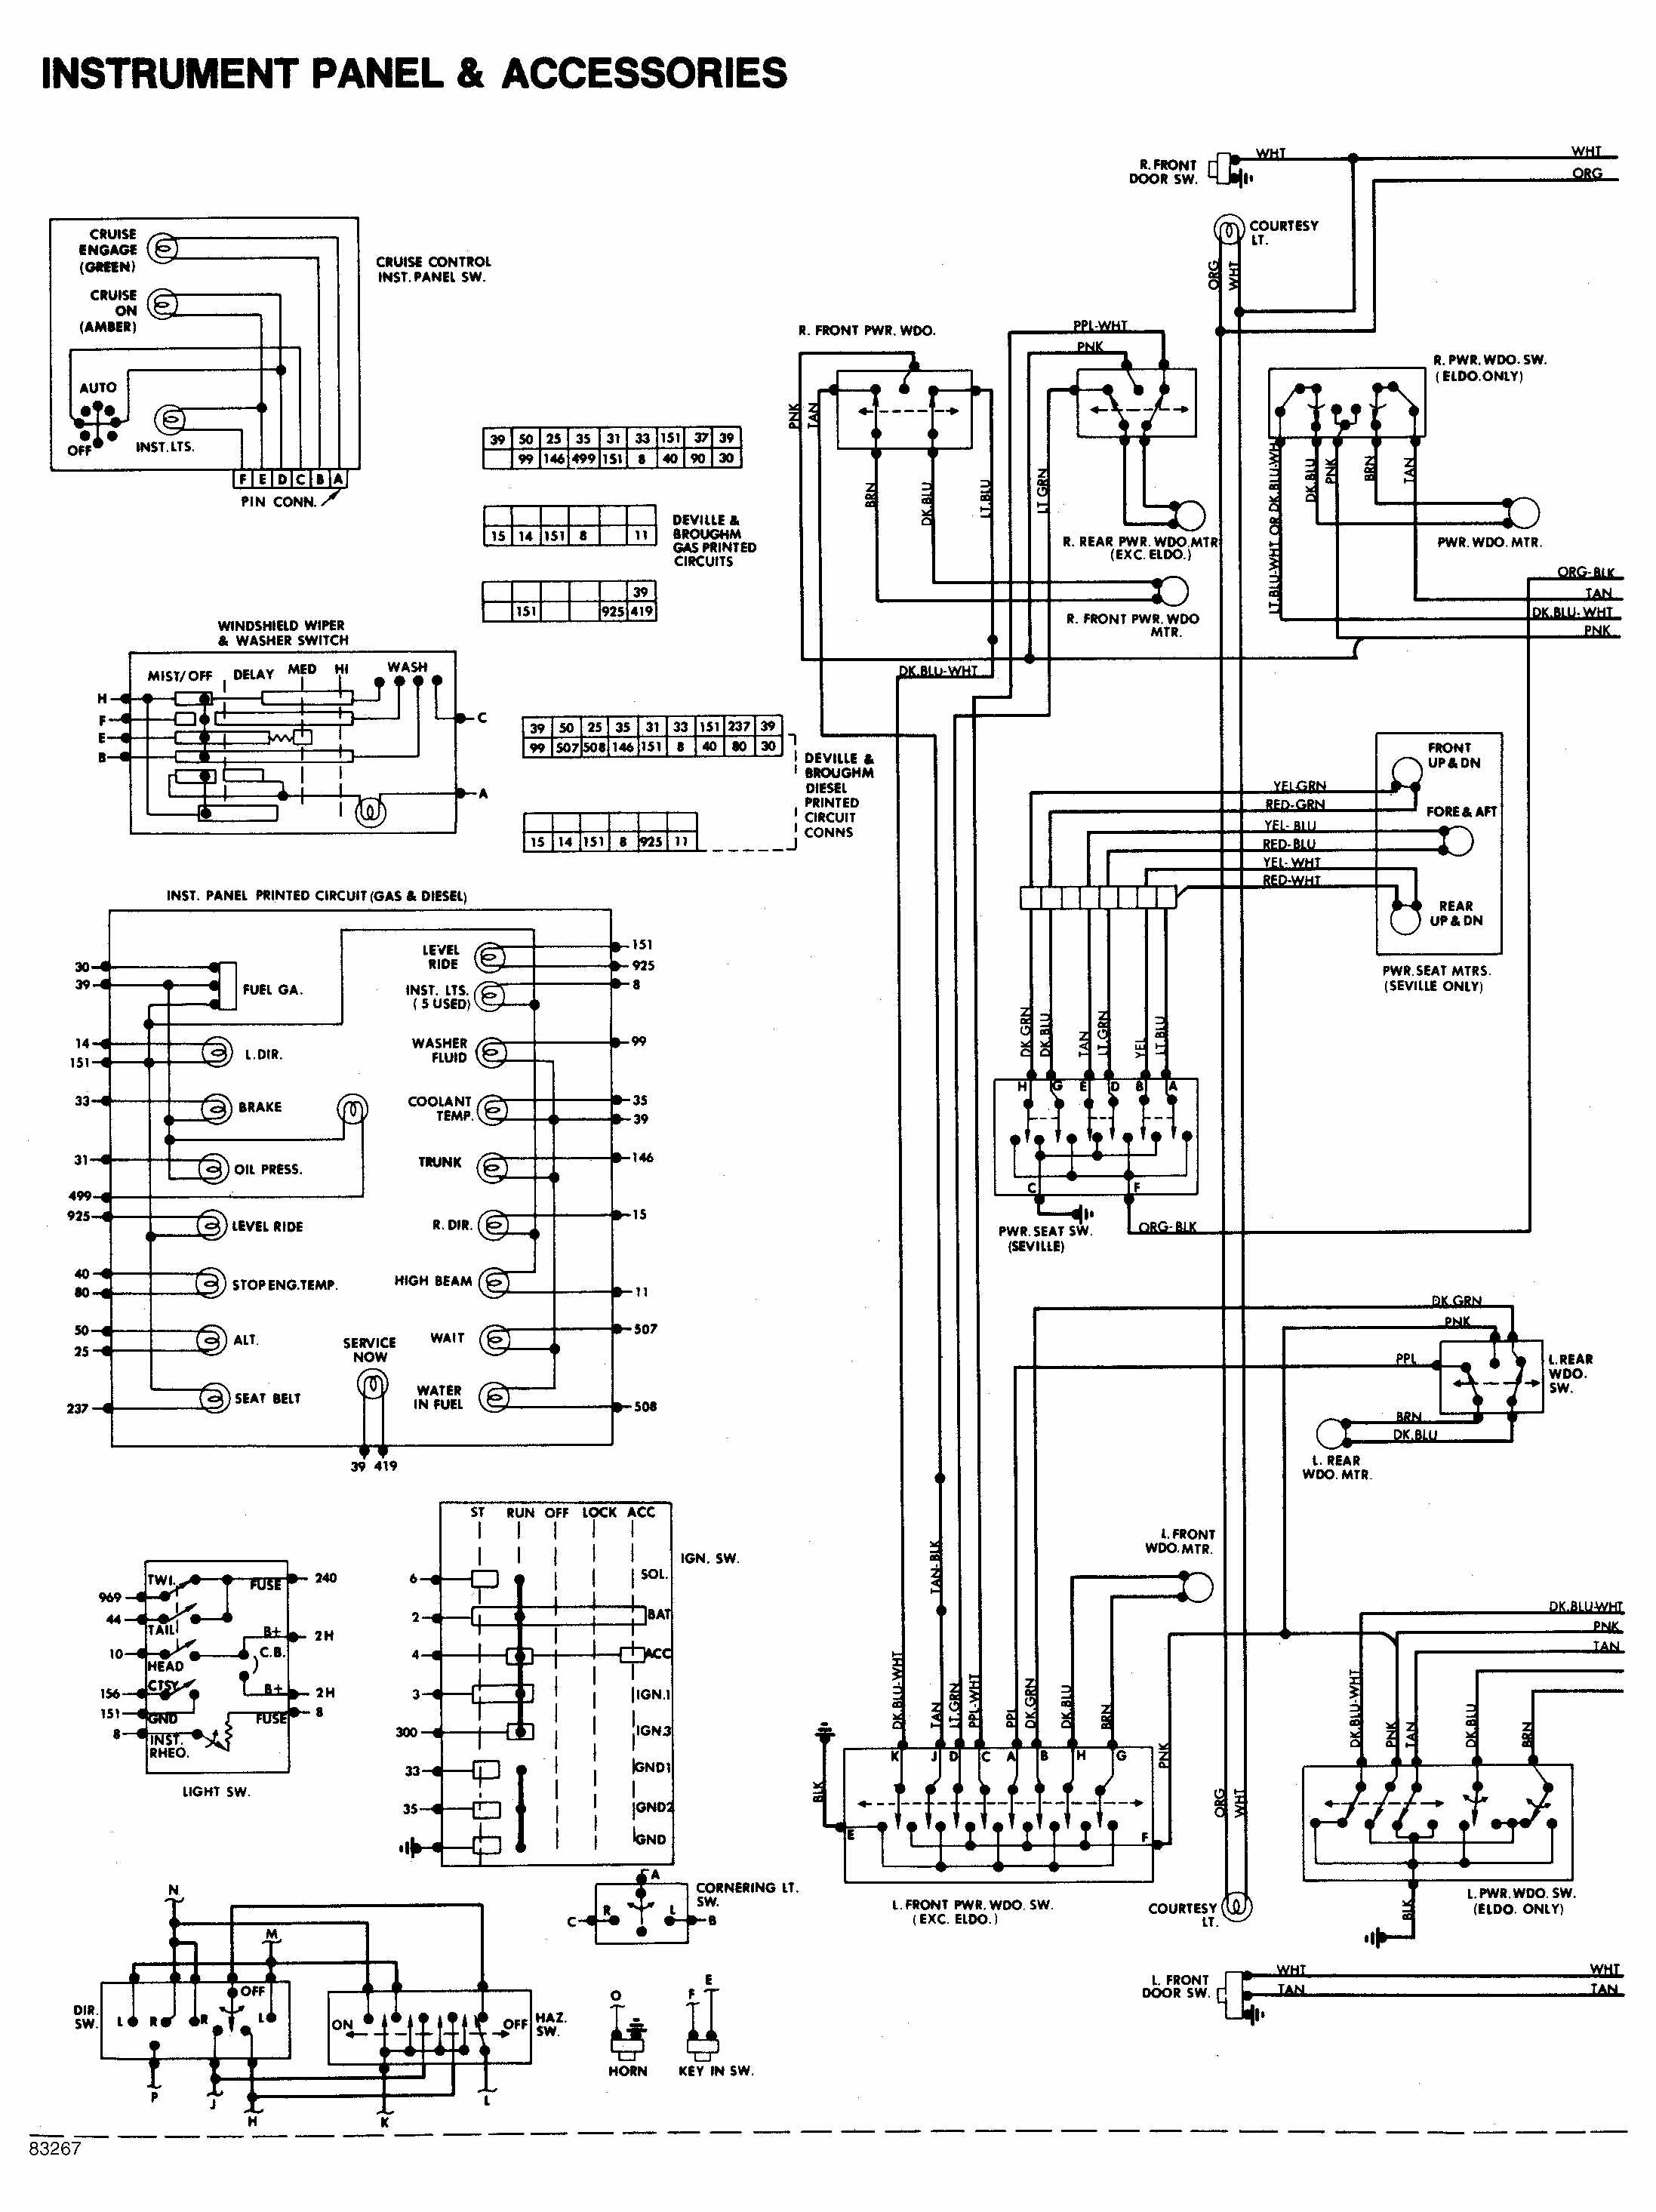 instrument panel and accessories wiring diagram of 1984 cadillac deville chevy diagrams 1984 El Camino Wiring-Diagram at fashall.co